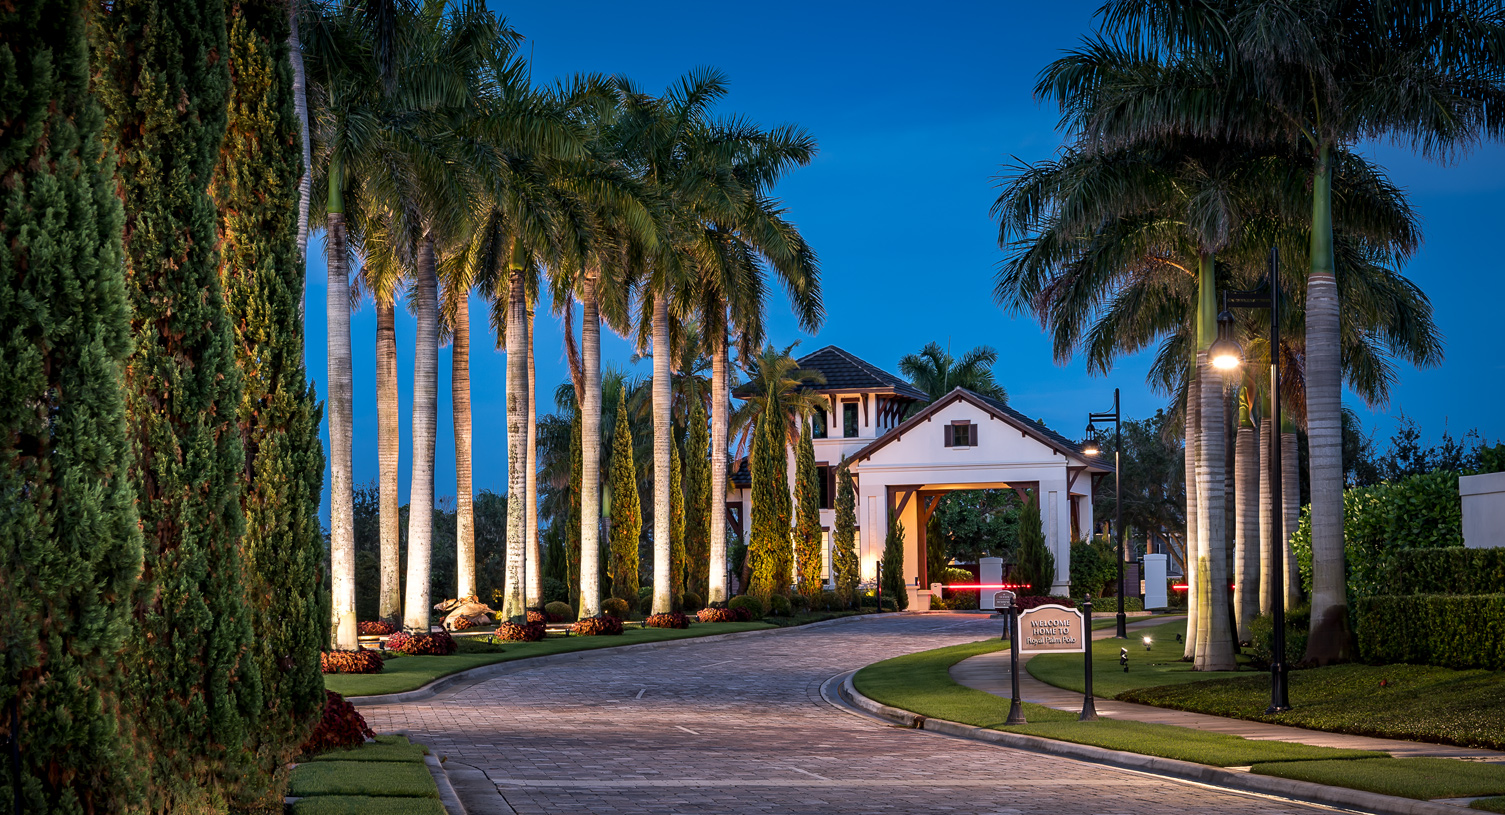 The elegant entry is lined with royal palms